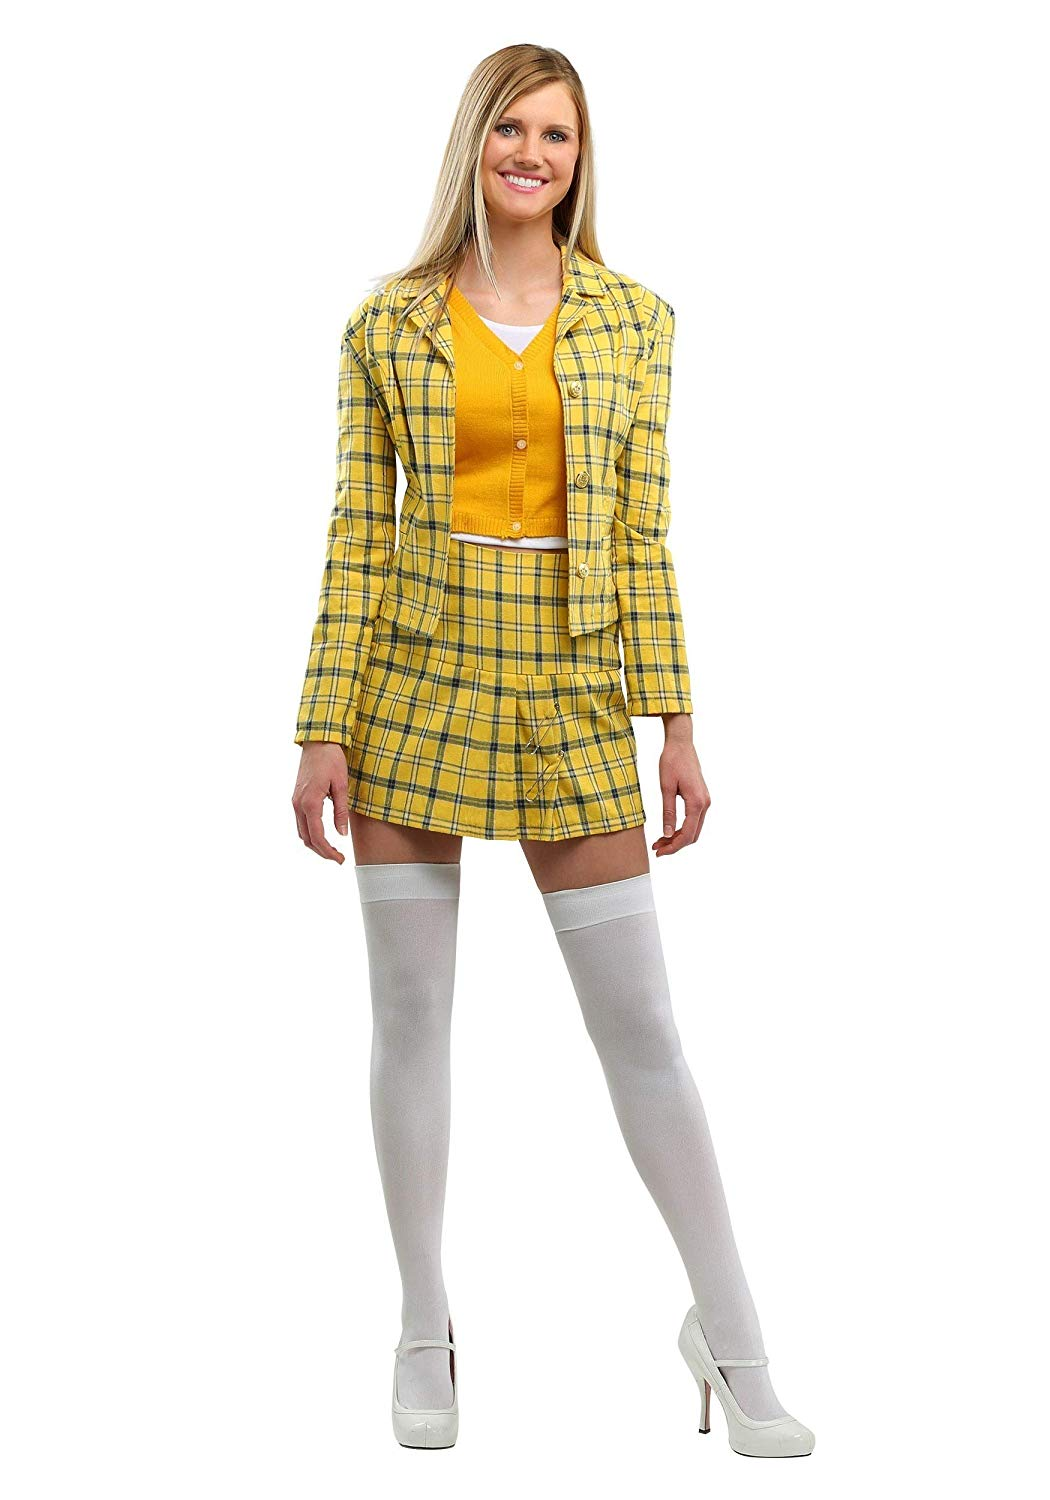 Fun Costumes Exclusive Womens Clueless Cher Costume Set